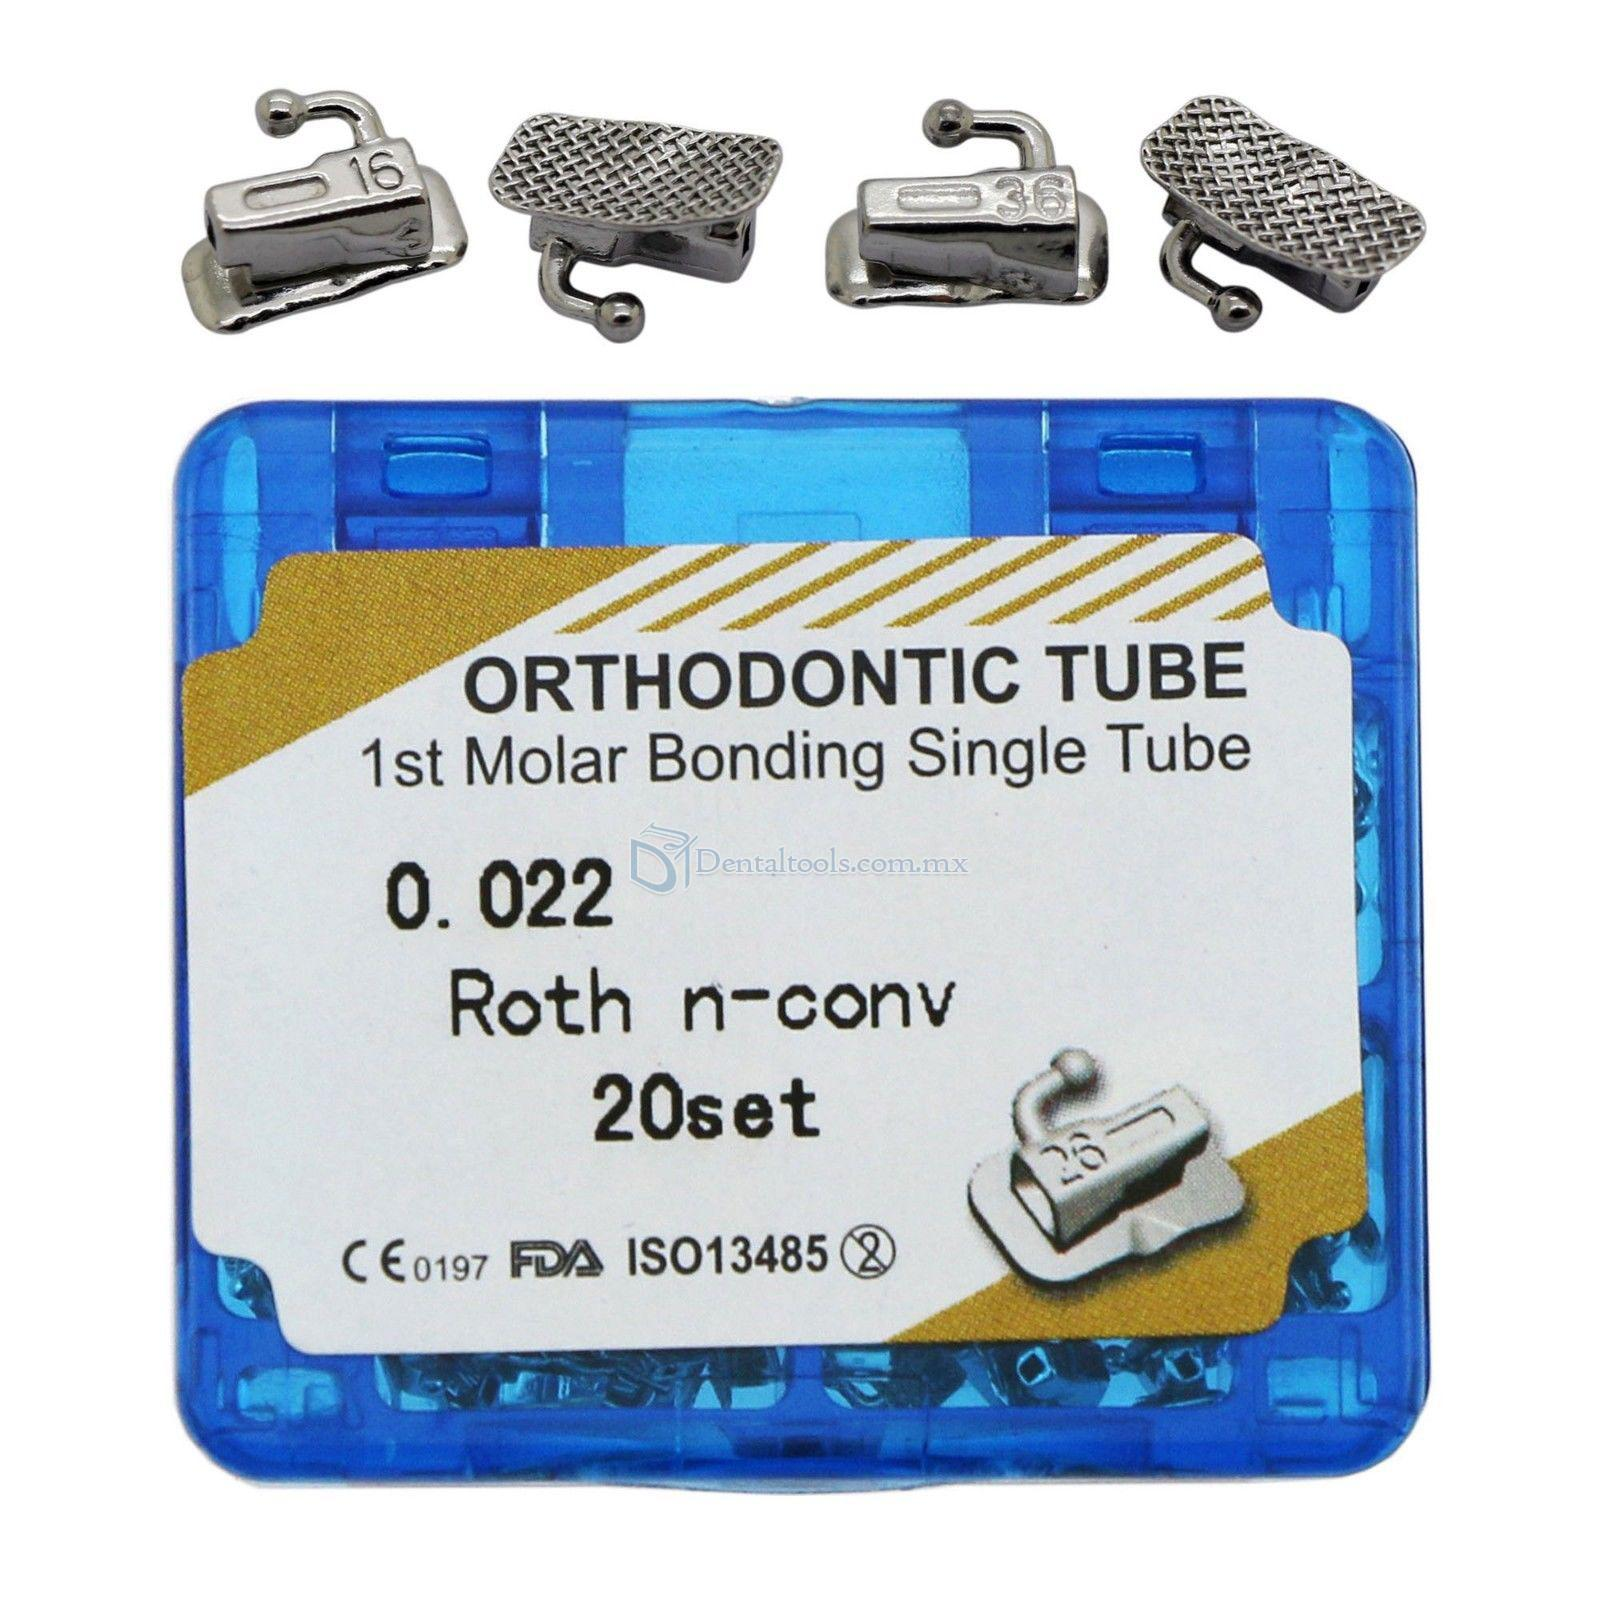 20 Sets Ortodoncia Bonding Solo Buccal Tubo 1ra Molar Roth 022 Slot